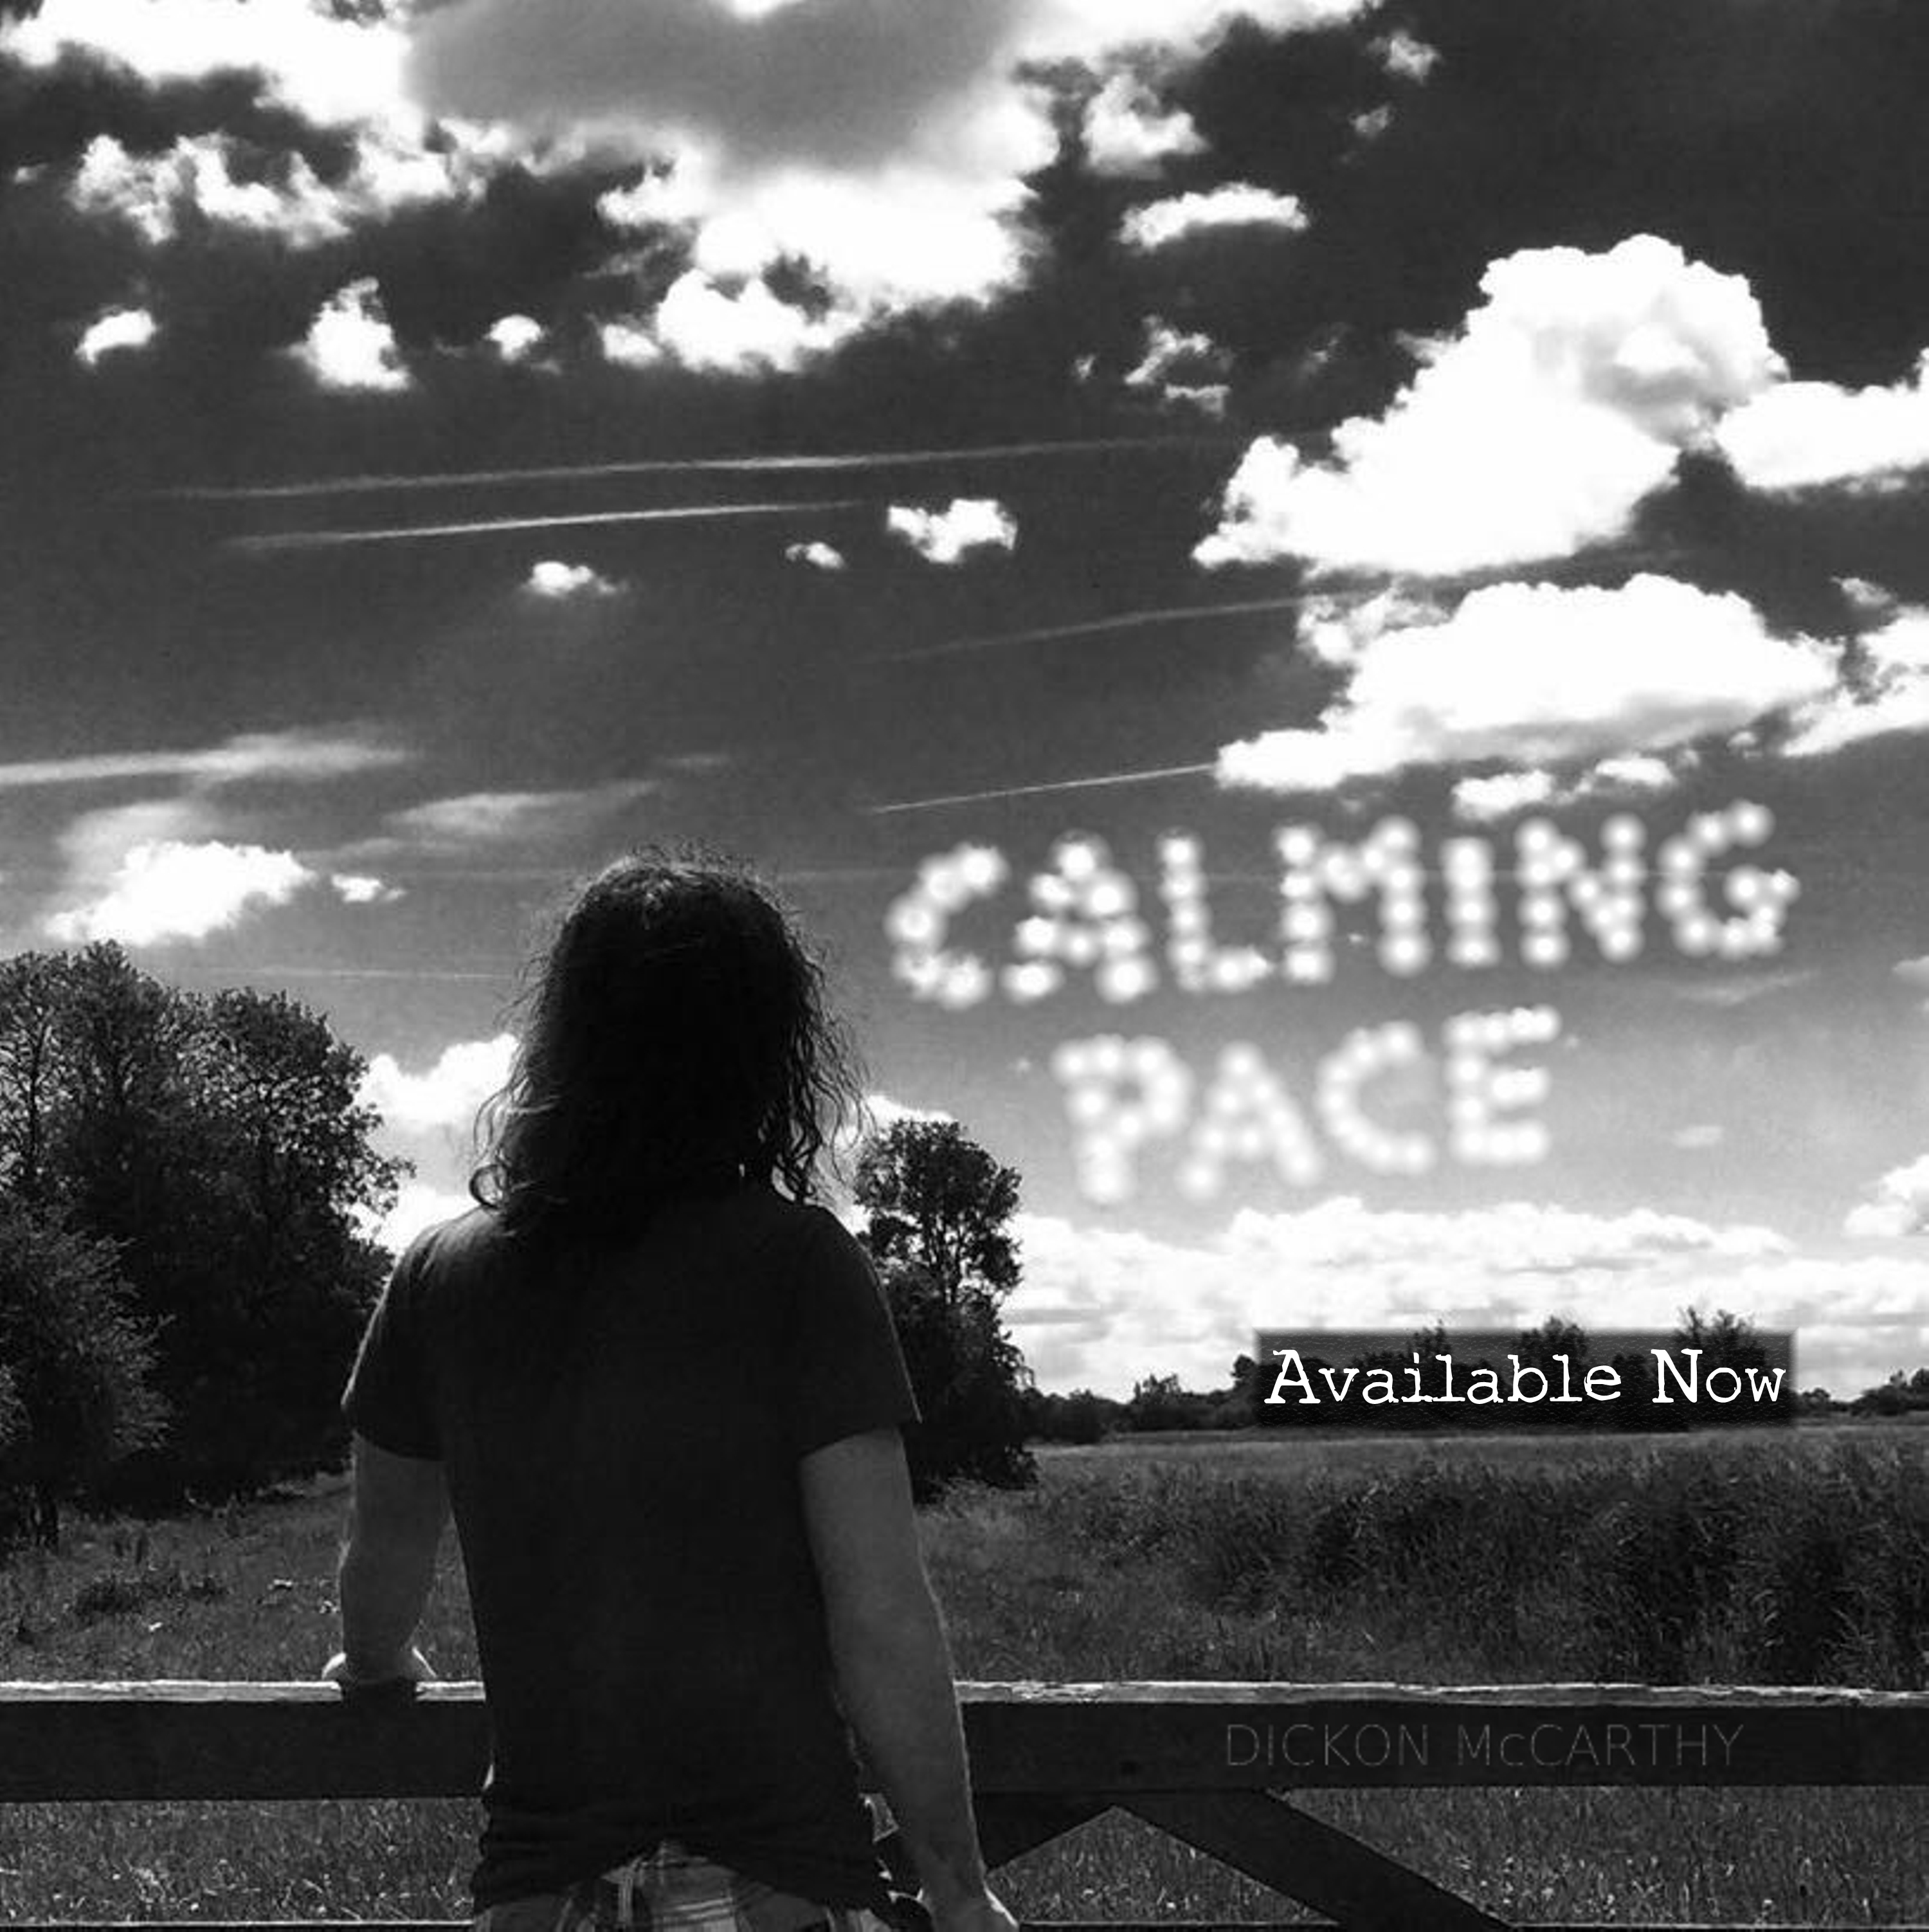 New Single 'Calming Pace' Available Now!